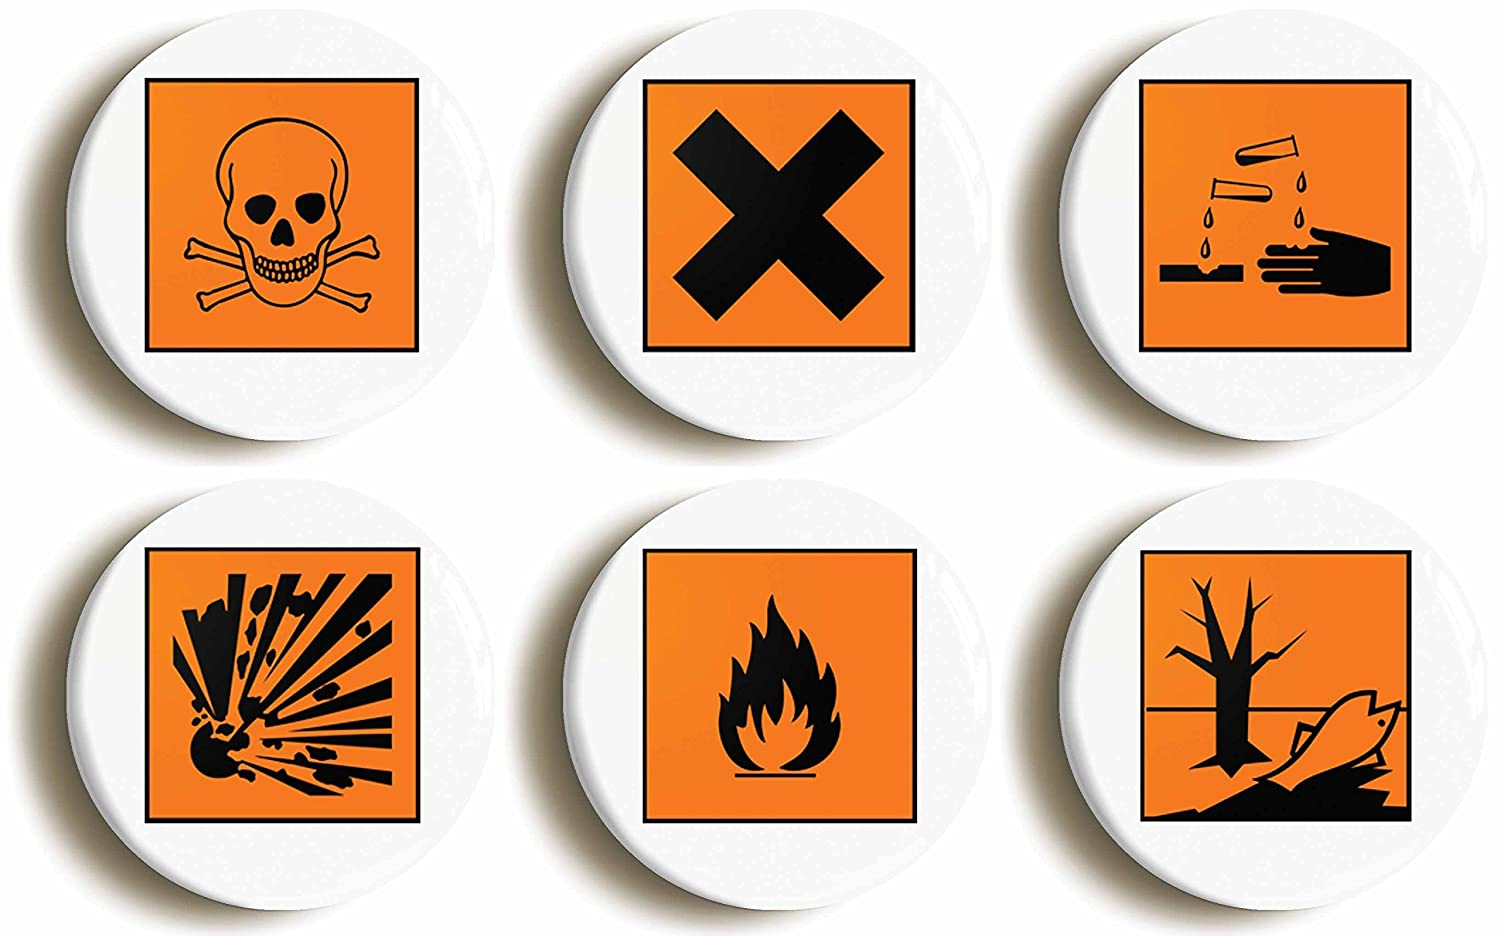 6 x science hazard symbol geek badges button pins 1inch25mm 6 x science hazard symbol geek badges button pins 1inch25mm diameter amazon toys games buycottarizona Image collections